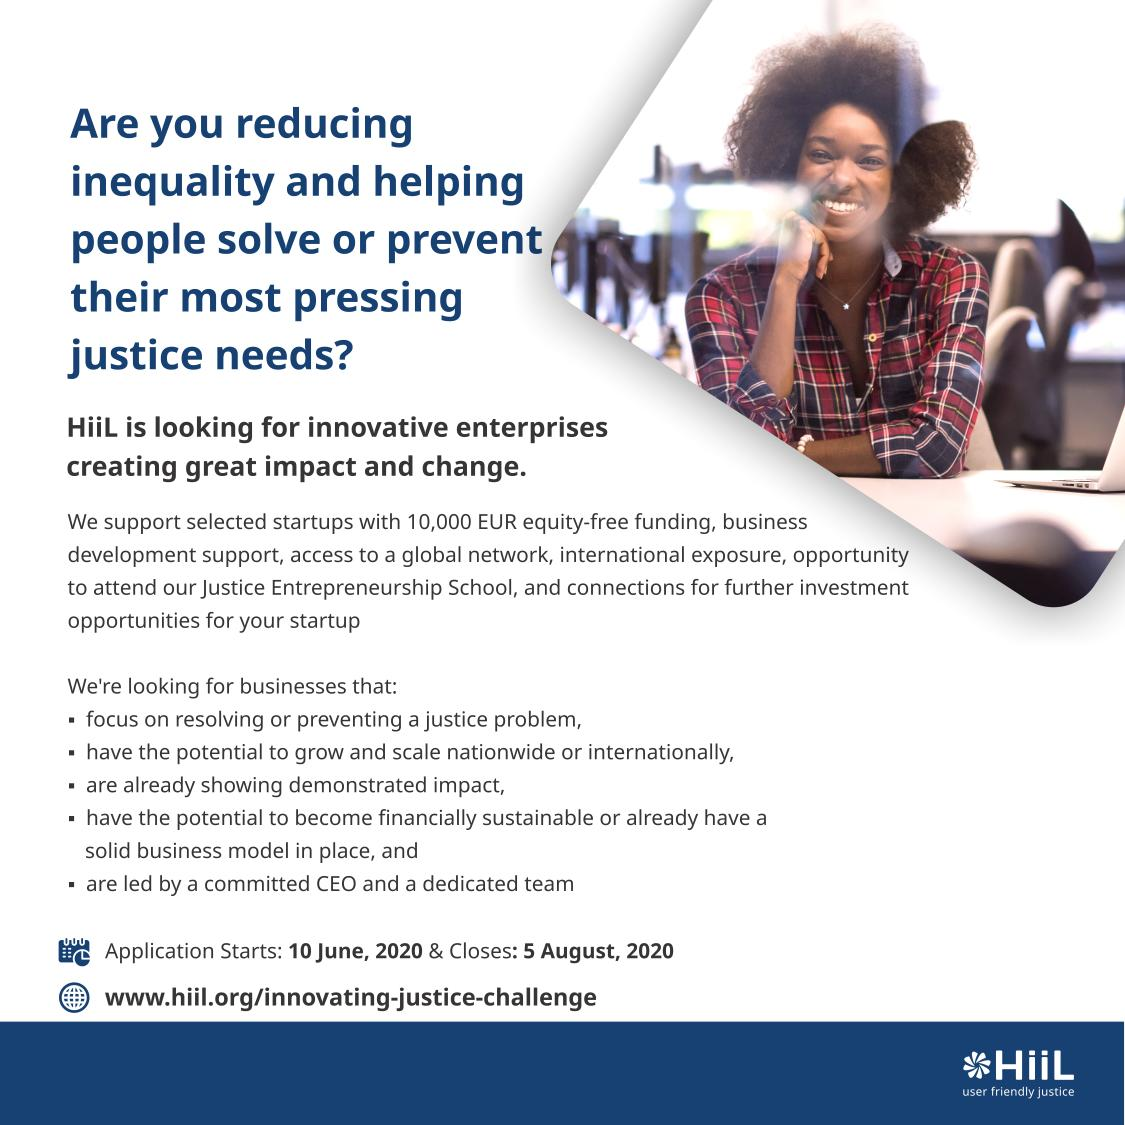 Is your solution creating access to justice, reducing inequality and unfairness? ⁣ ⁣ Then you should apply for the HiiL Innovating Justice Challenge 2020 via https://t.co/3947YFZEgx⁣ for a chance to be selected for support through the prestigious HiiL Justice Accelerator.⁣ https://t.co/FqzUt2GORk